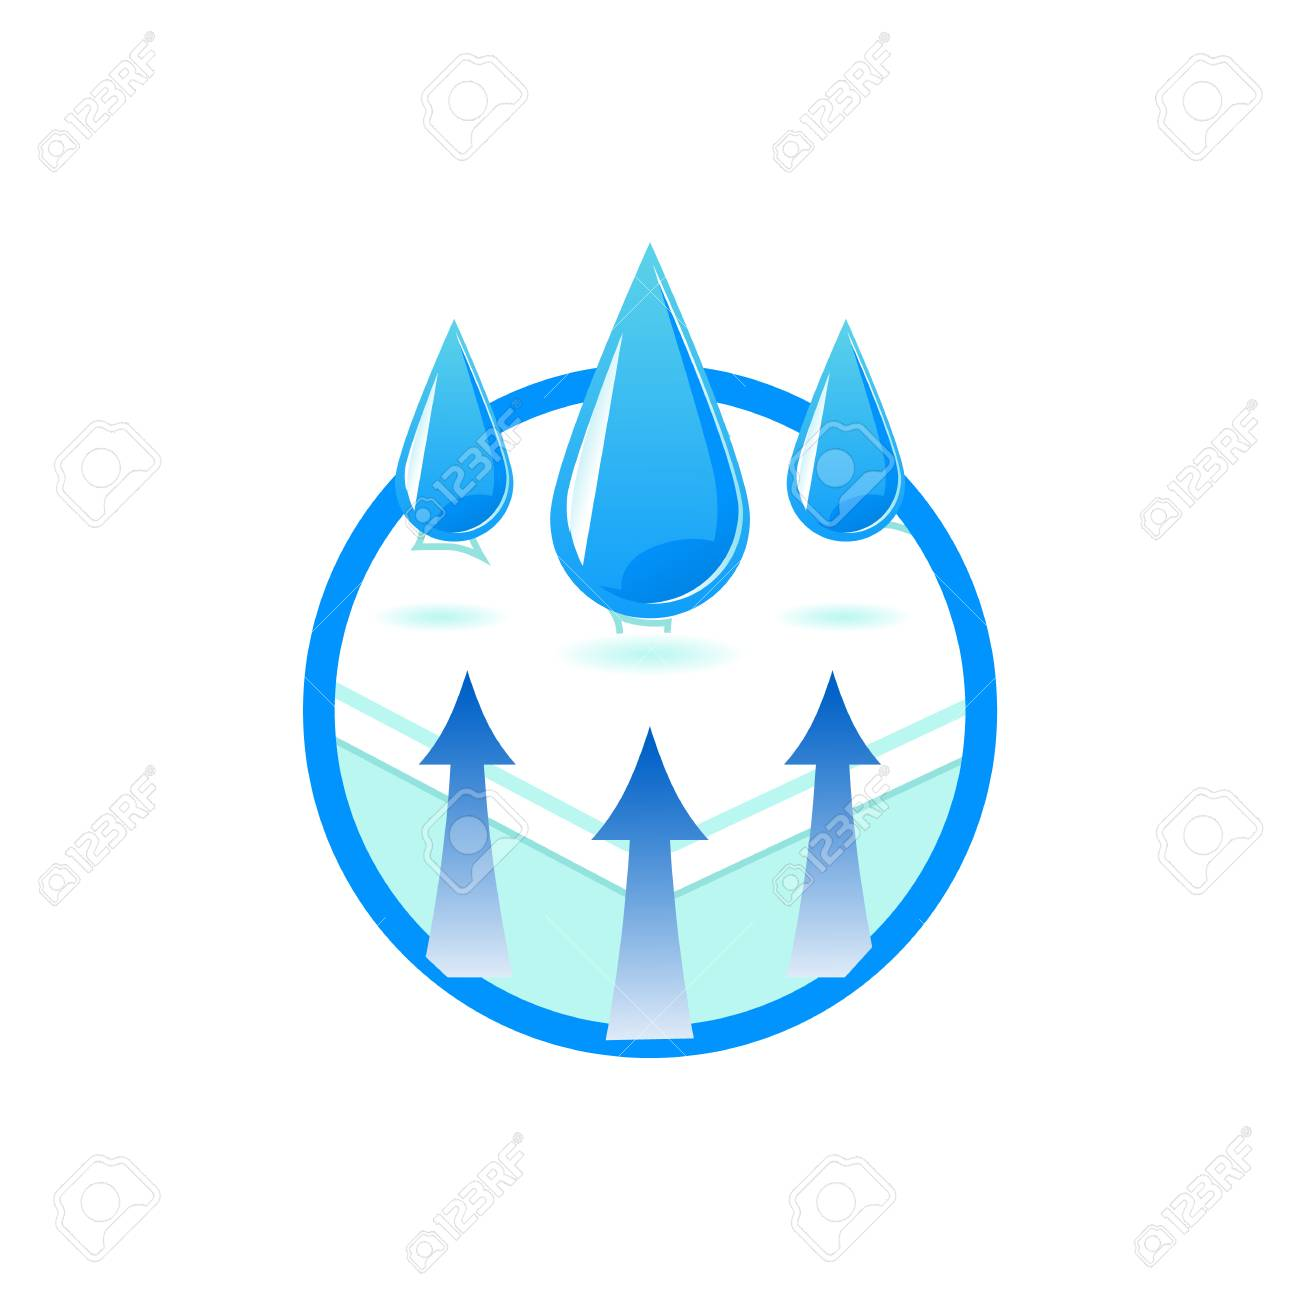 Breathable and waterproof fabric technology symbol in flat style - isolated vector illustration of comfortable orthopedic mattress with water repellent materials for health safety. - 126714025